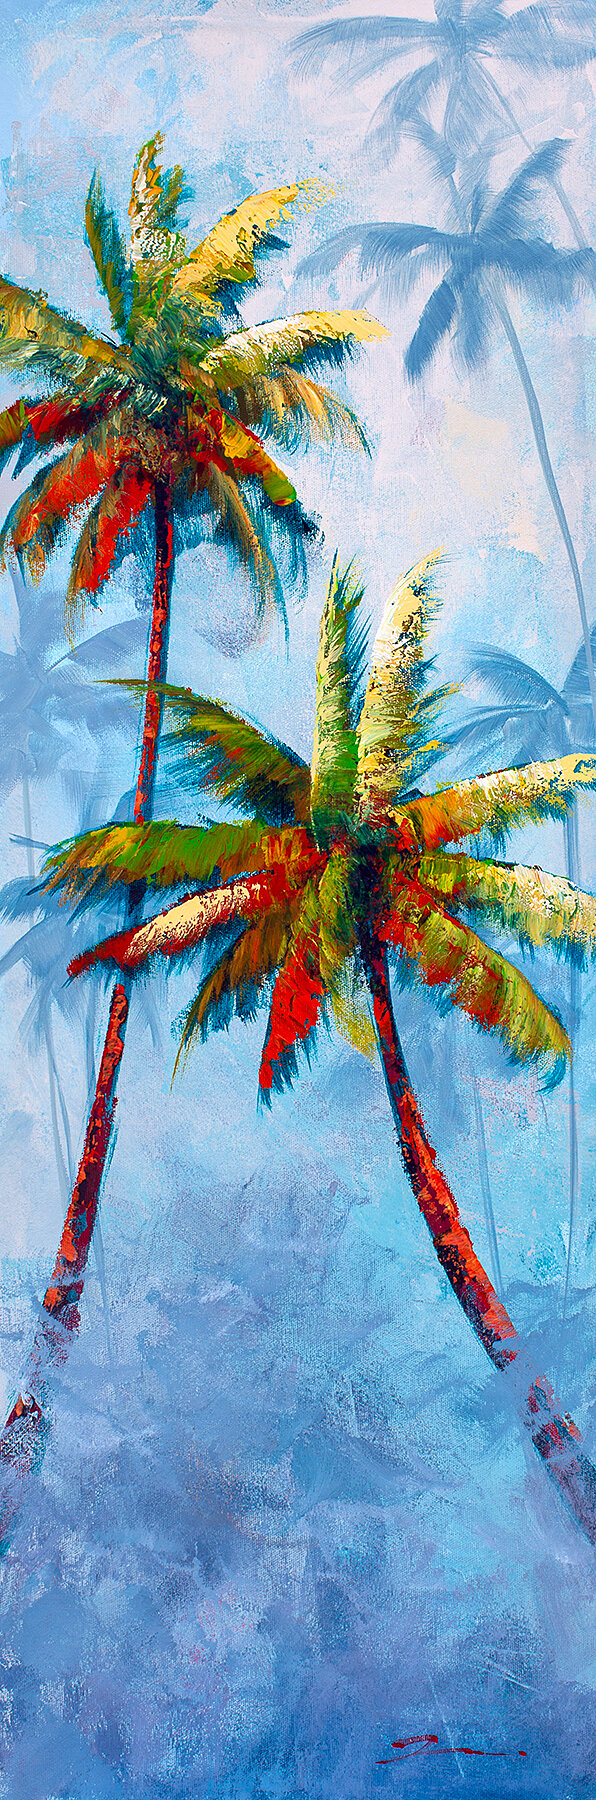 "Salty Breeze 12x36Salty Breeze is an original acrylic painting by Rosa Chavez on a gallery wrapped canvas measuring 12"" x 36"" x 1.5"". Tropical Paradis"